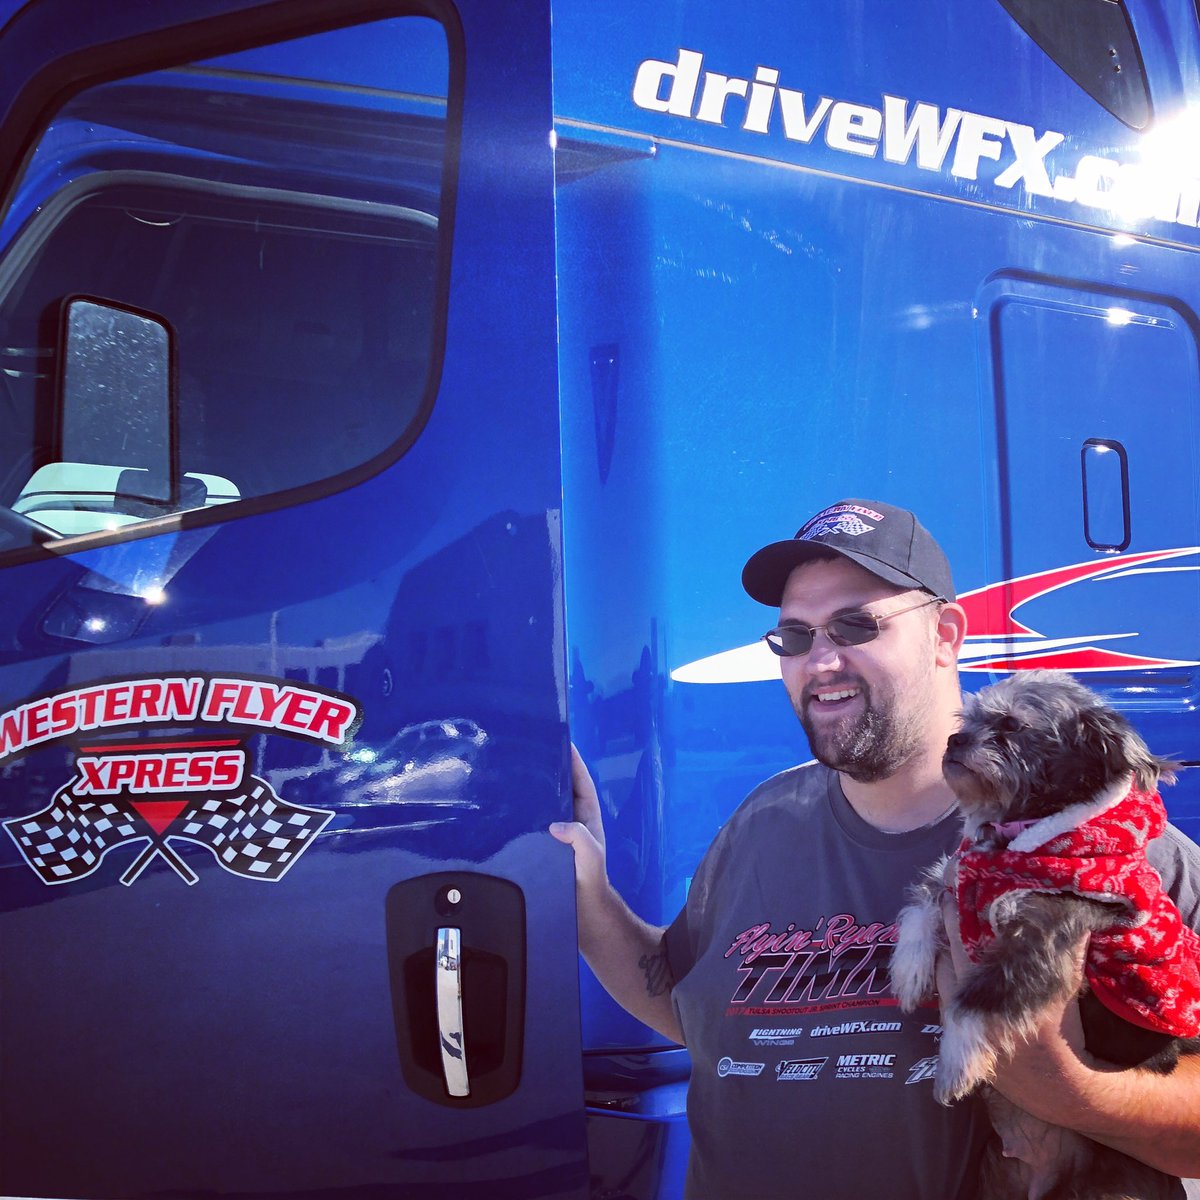 Chris gets ready to hit the road with his dog dressed for the cold weather❄️❄️! Stay warm and safe out there! . . #driveyourdream #cdldriver #18wheelers #otrdriver #leasetoown #cdlcontractor #driveWFX #petpassenger #dogs #dogonboard #trucks